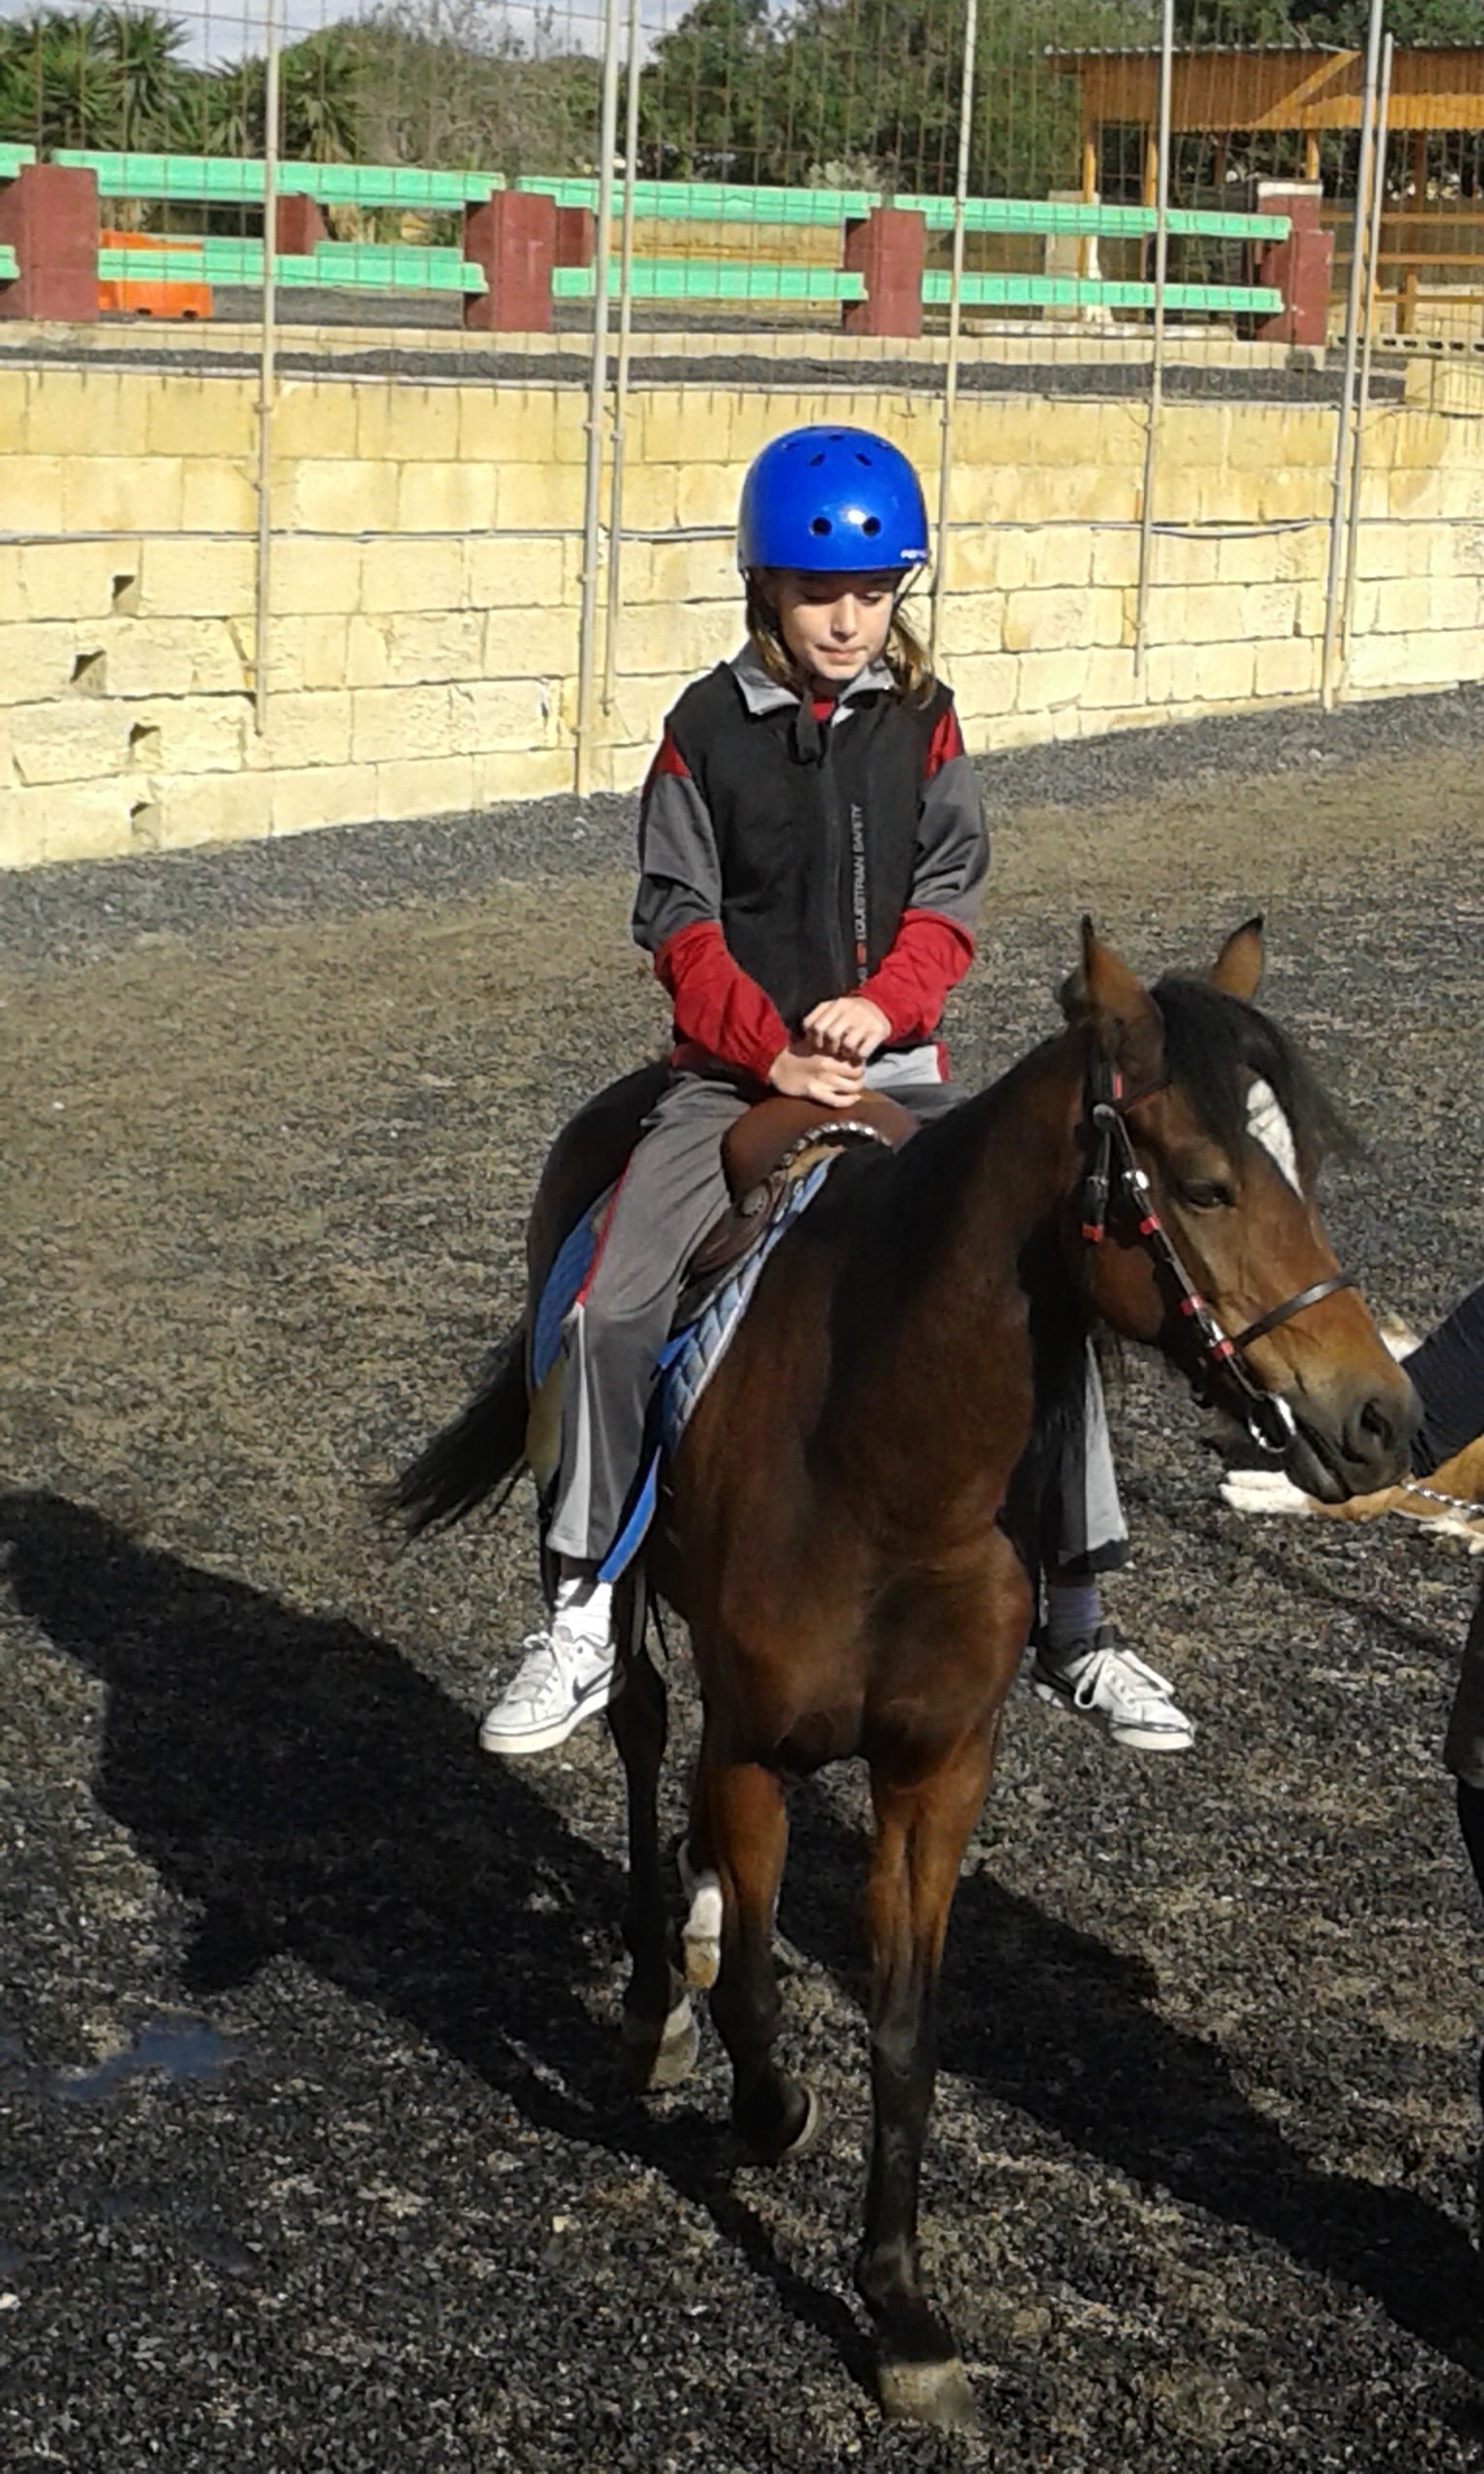 Horse-riding at Sunflower Stables